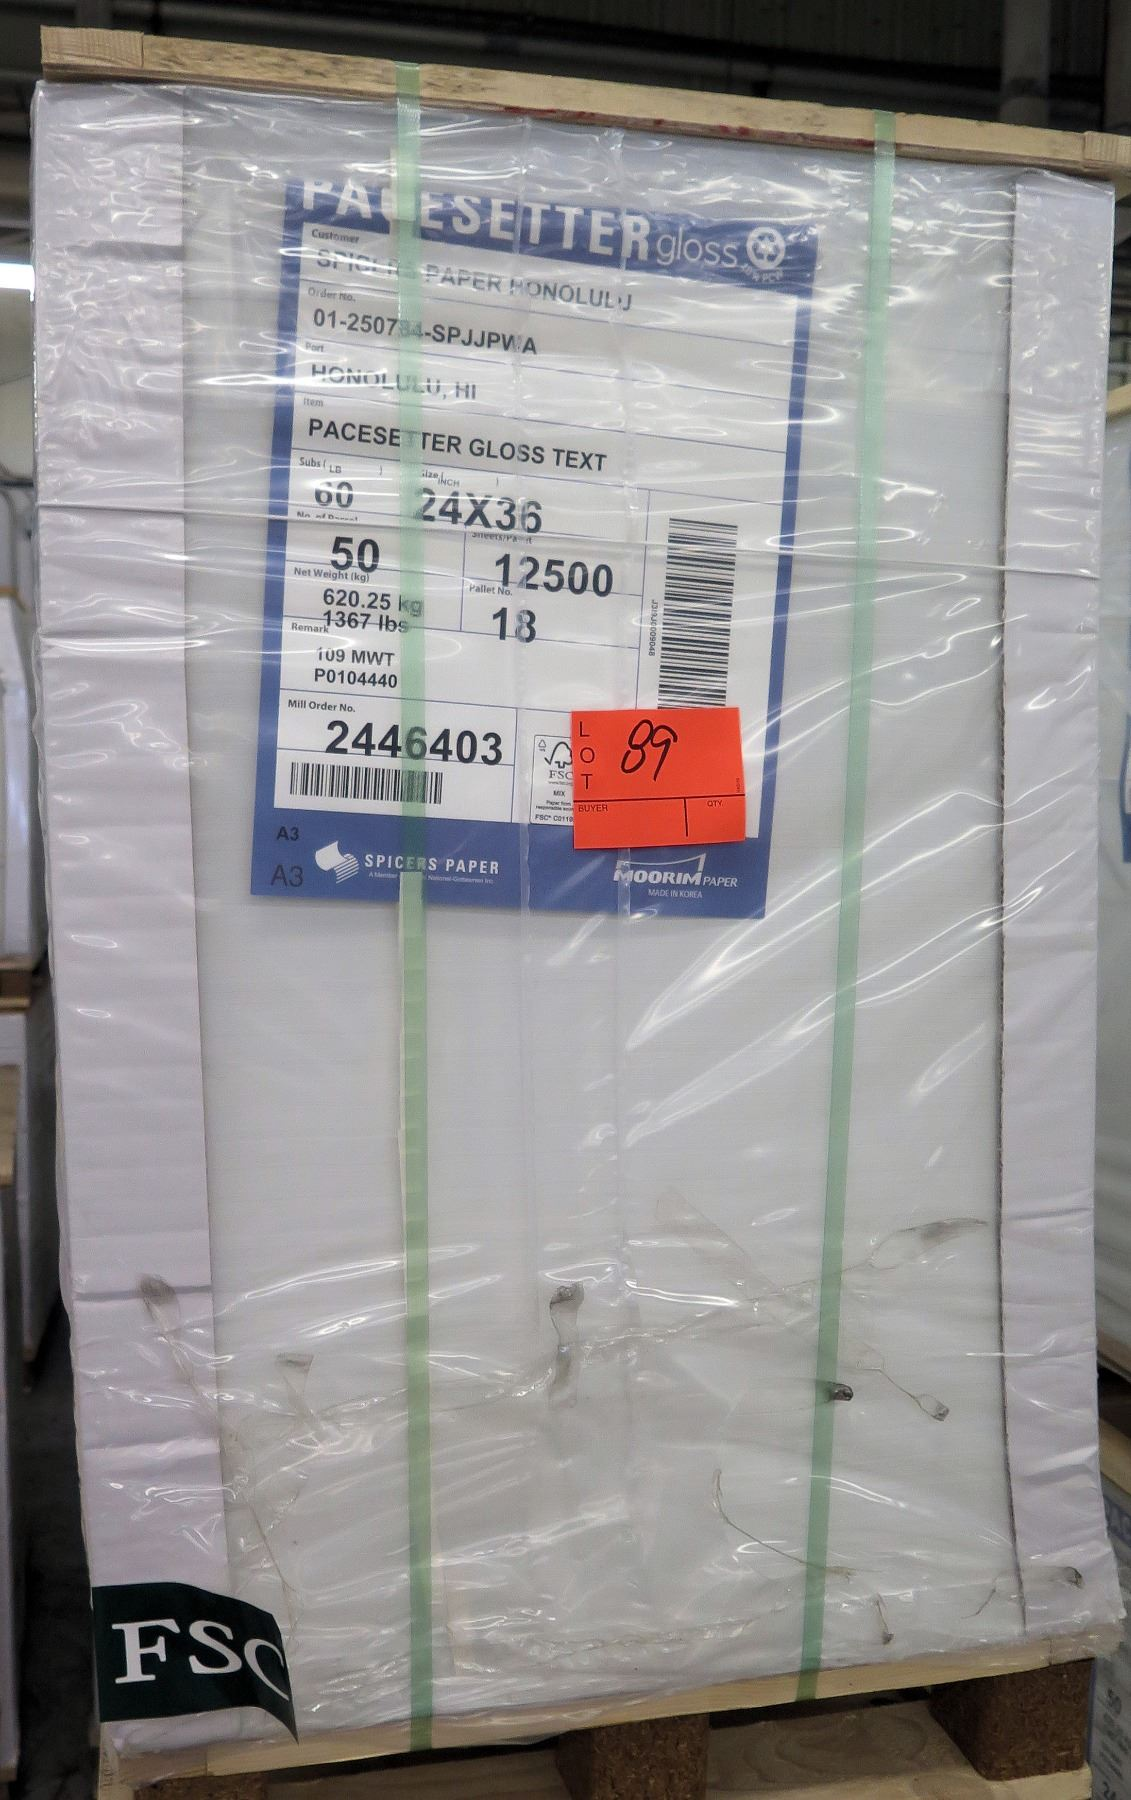 Qty 1 Pallet Pacesetter 24 x 36 Gloss Text Paper 12,500 Sheets